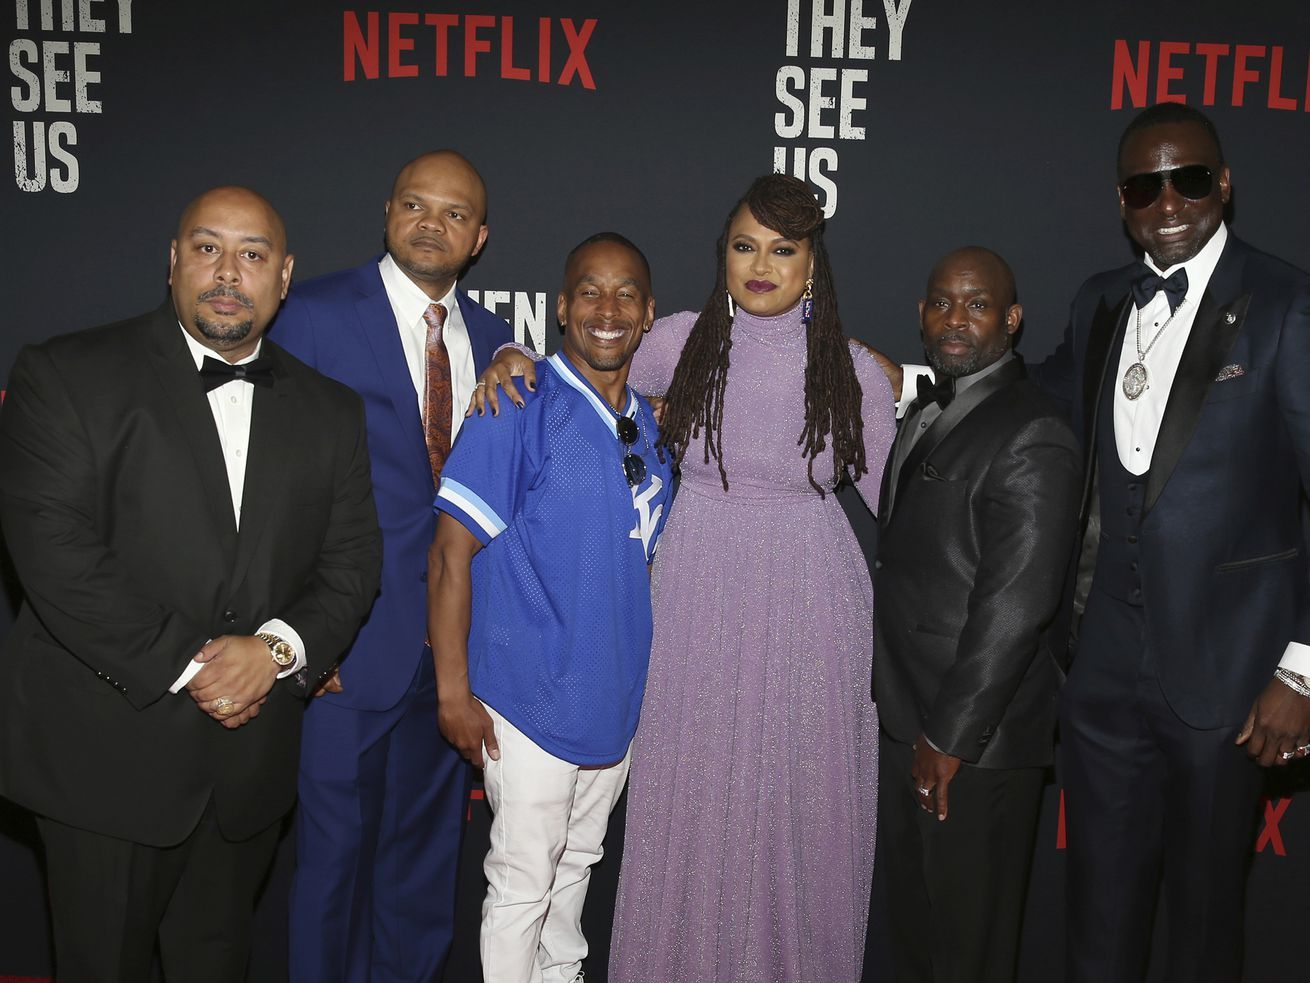 """Director Ava DuVernay with the Central Park 5 (from left): Raymond Santana, Kevin Richardson, Korey Wise, Anthony McCray and Yuesf Salaam at the premiere of """"When They See Us"""" at the Apollo Theater in New York."""